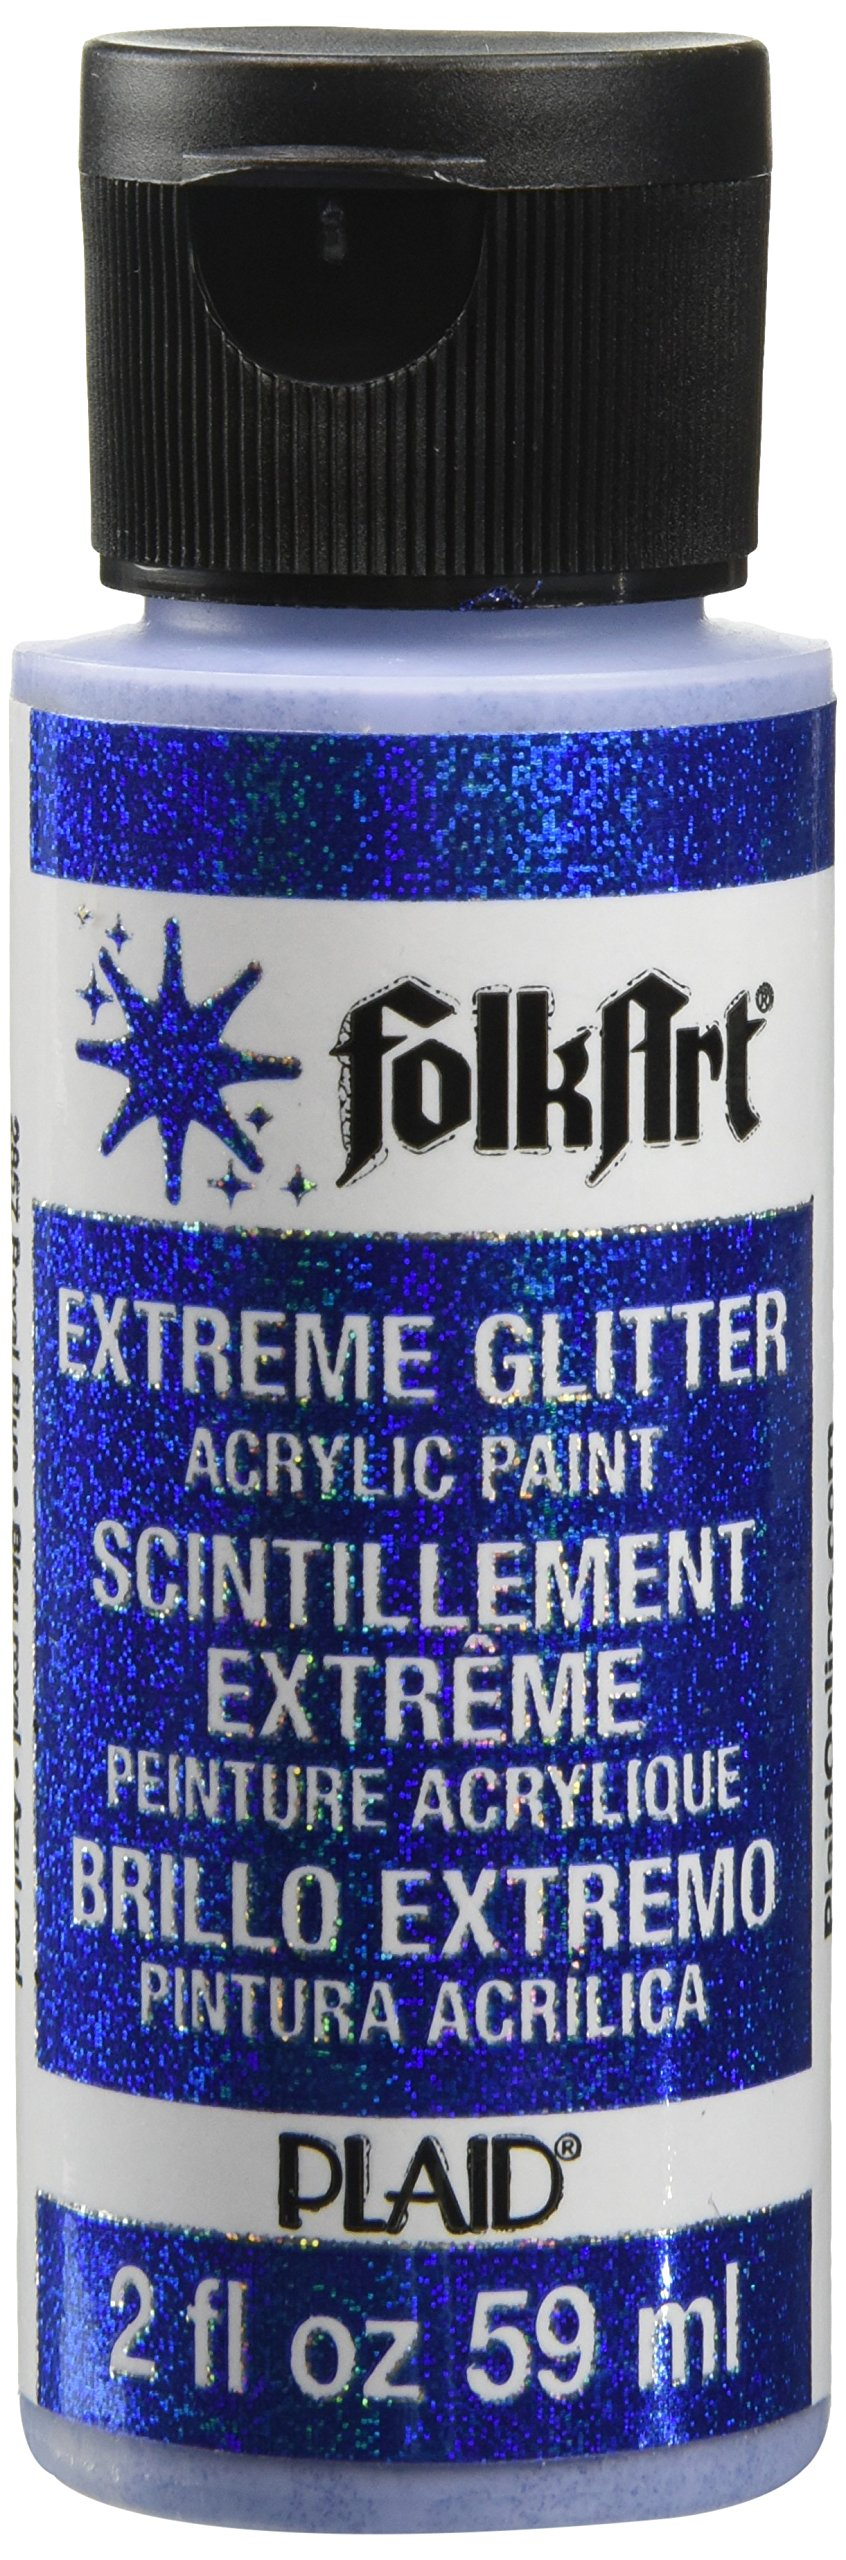 FolkArt Extreme Glitter Acrylic Paint in Assorted Colors (2 oz), 2857, Royal Blue